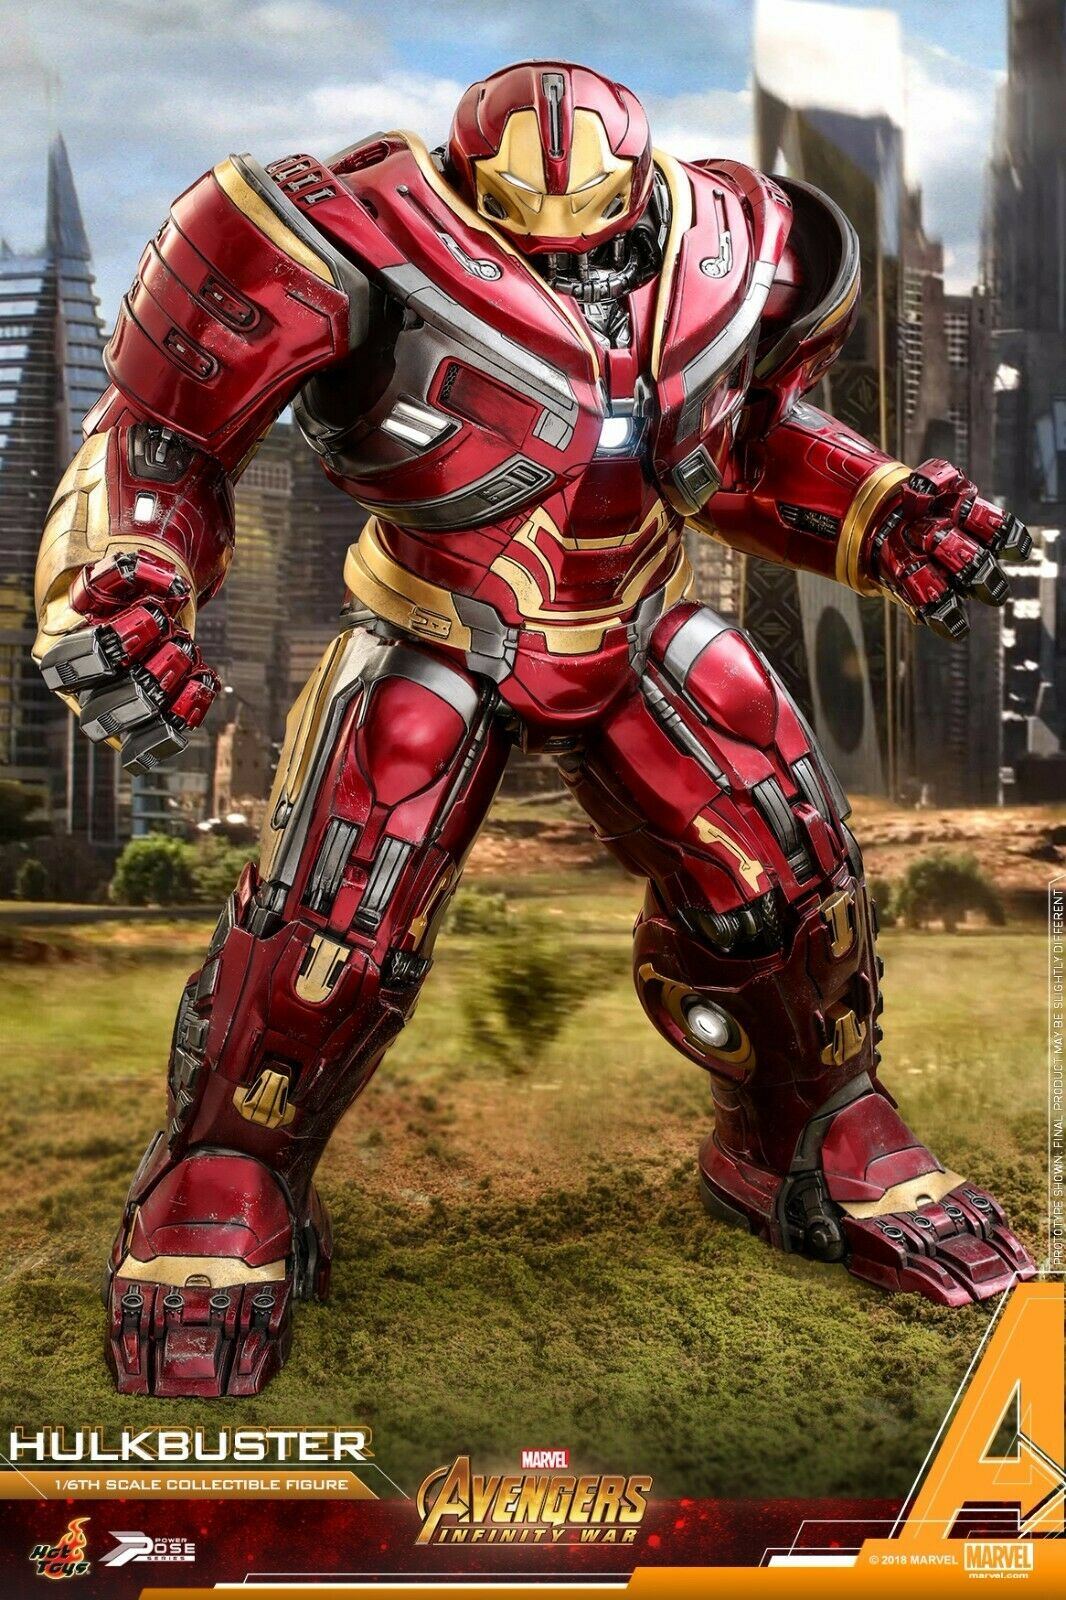 HOT TOYS PPS005 Avengers 3  Iron Man Power Pose Hulkbuster 1 6 Figure